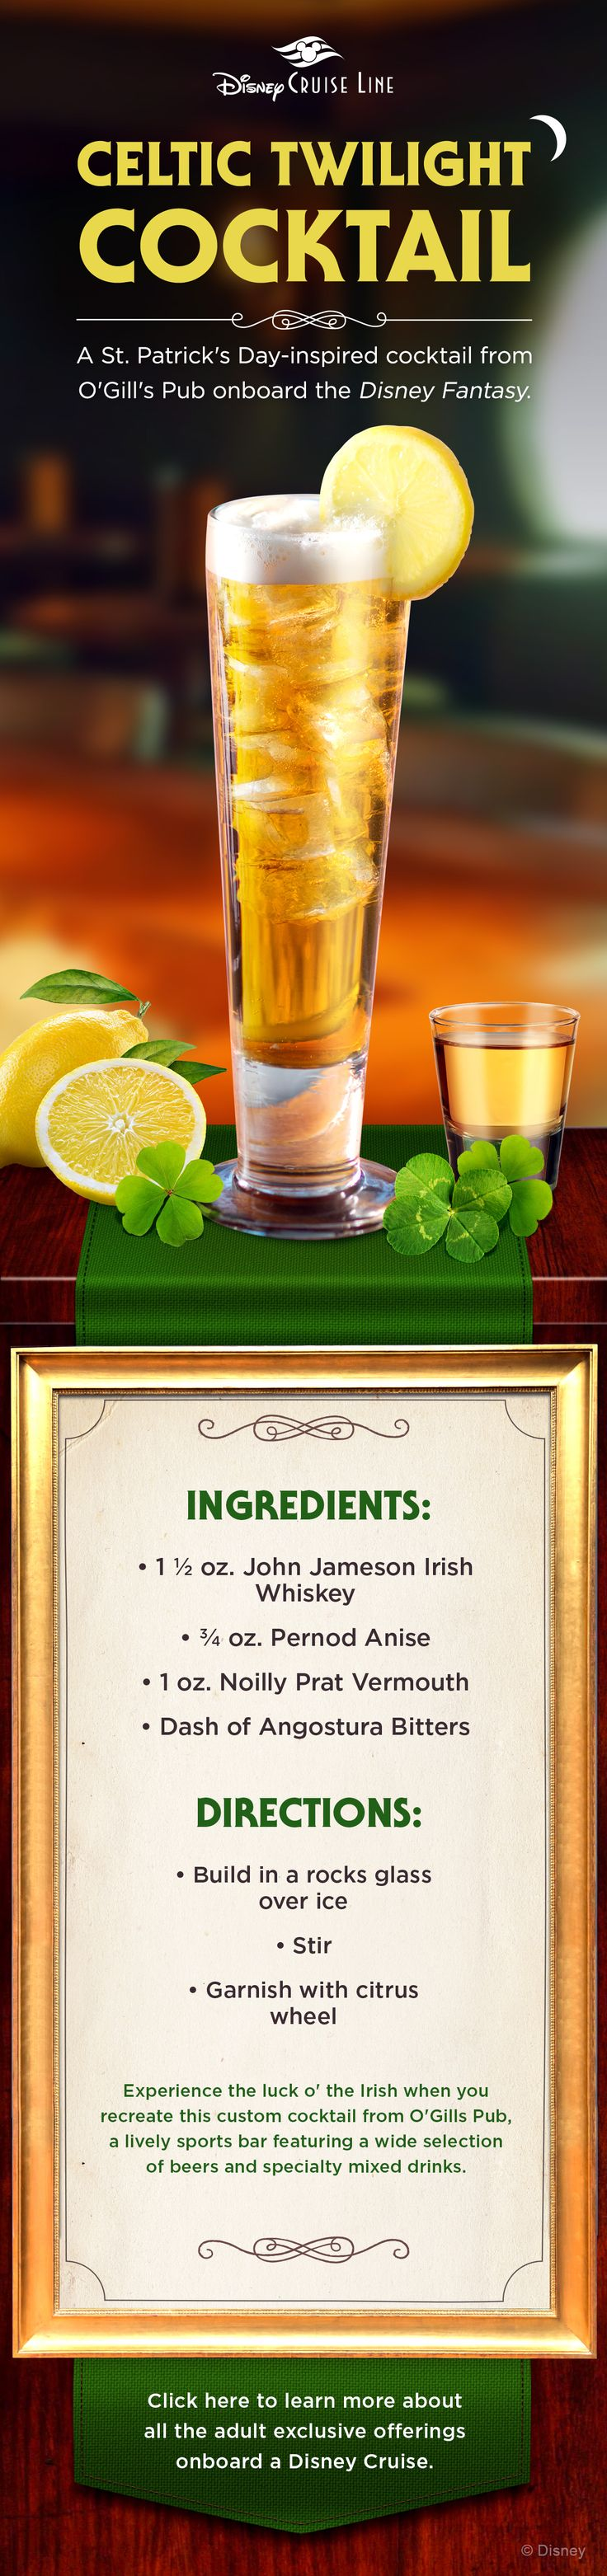 Experience the luck o' the Irish when you recreate this custom cocktail from O'Gills Pub, a lively sport bar featuring a wide selection of beers and specialty mixed drinks. Click to learn more about adult-exclusive offerings onboard Disney Cruise Line.